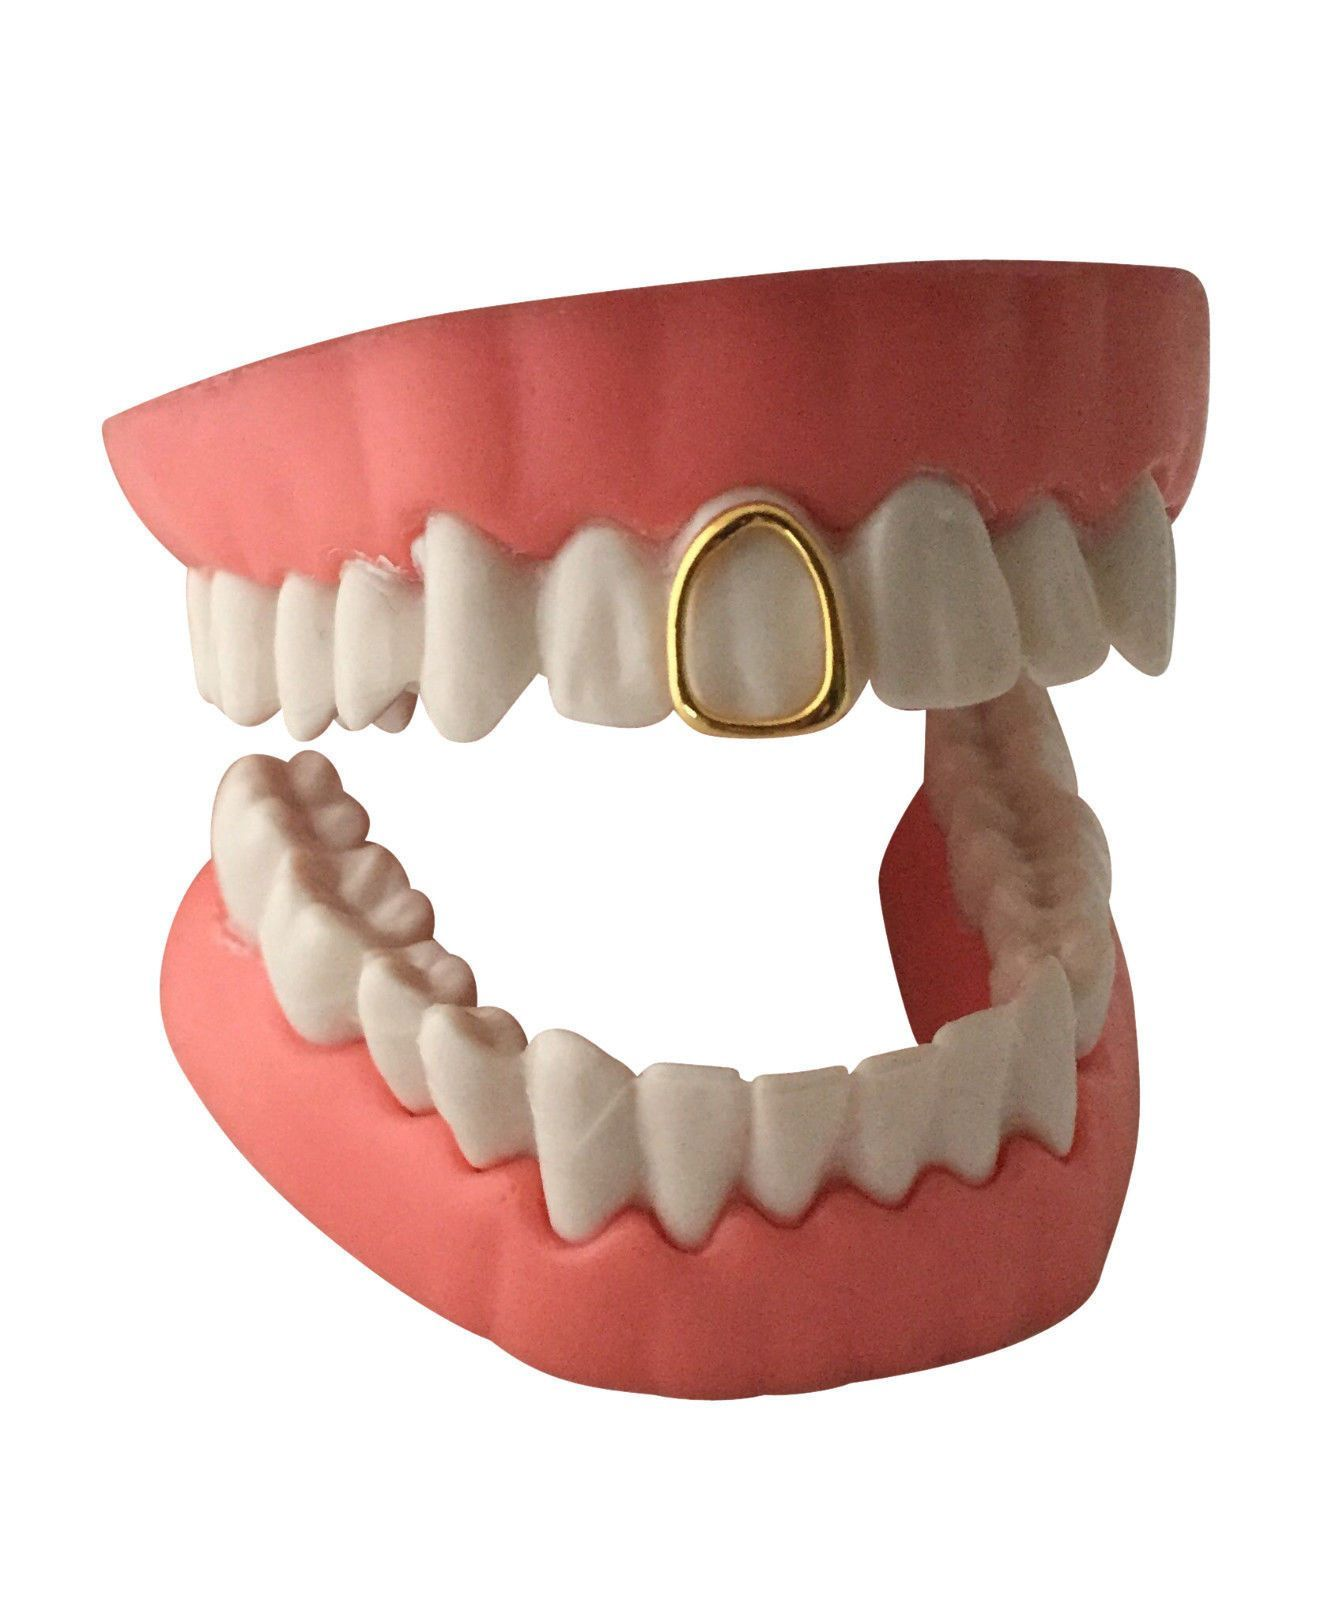 Open Face Grillz Grill 14K GP Single Tooth Cap w Mold Kit in 2019 ... 3e49b23e98a5